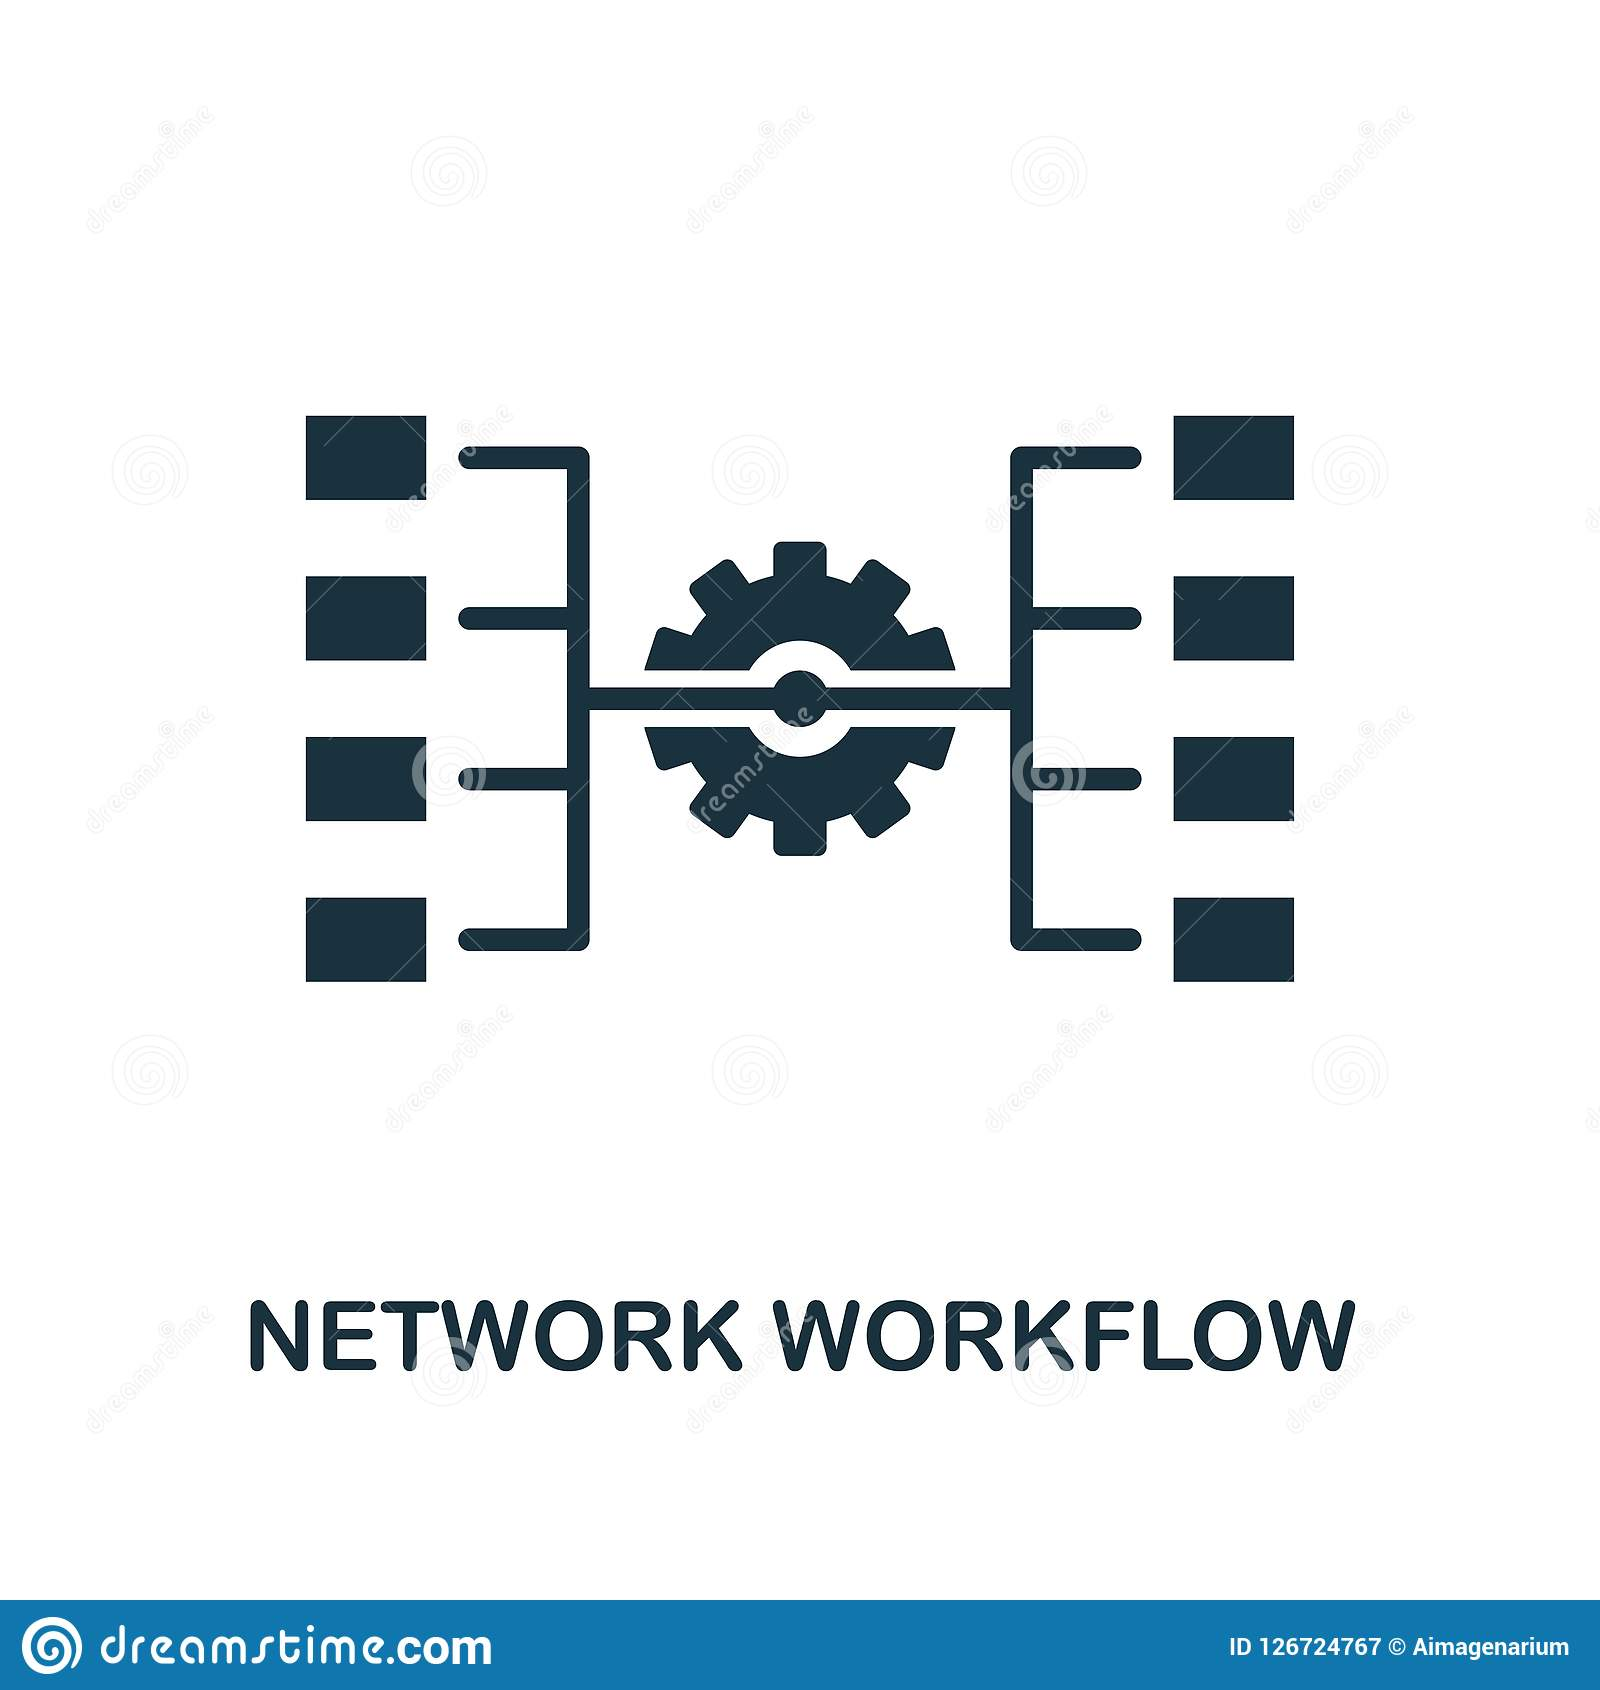 Network Workflow icon. Monochrome style design from big data icon collection. UI. Pixel perfect simple pictogram network workflow